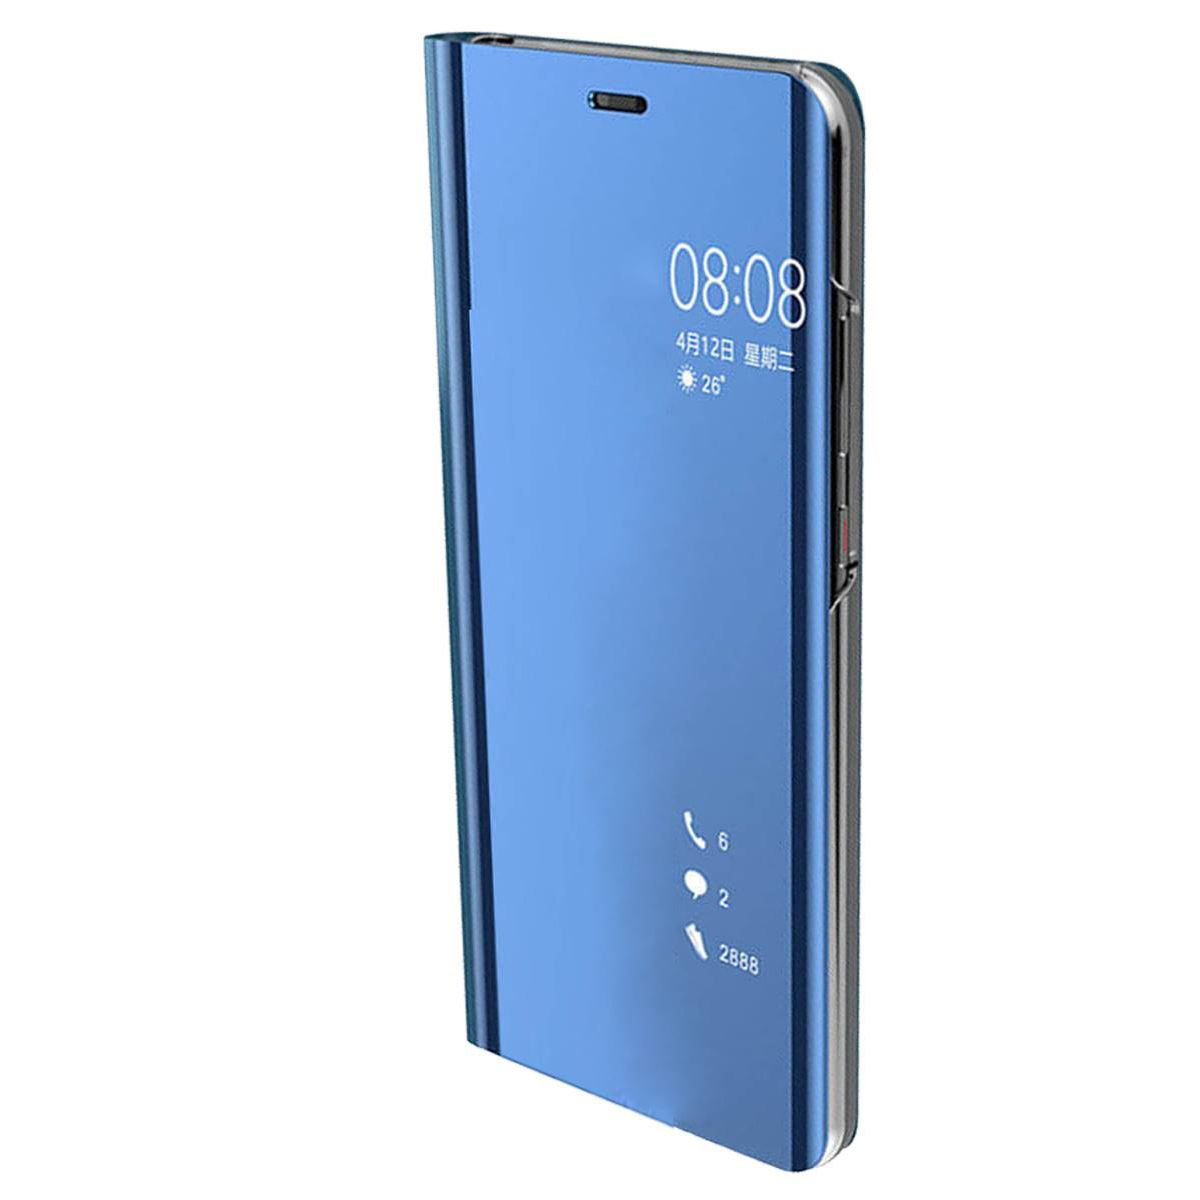 Huawei P Smart Case Smart View Mirror Flip Stand Cover - Blue